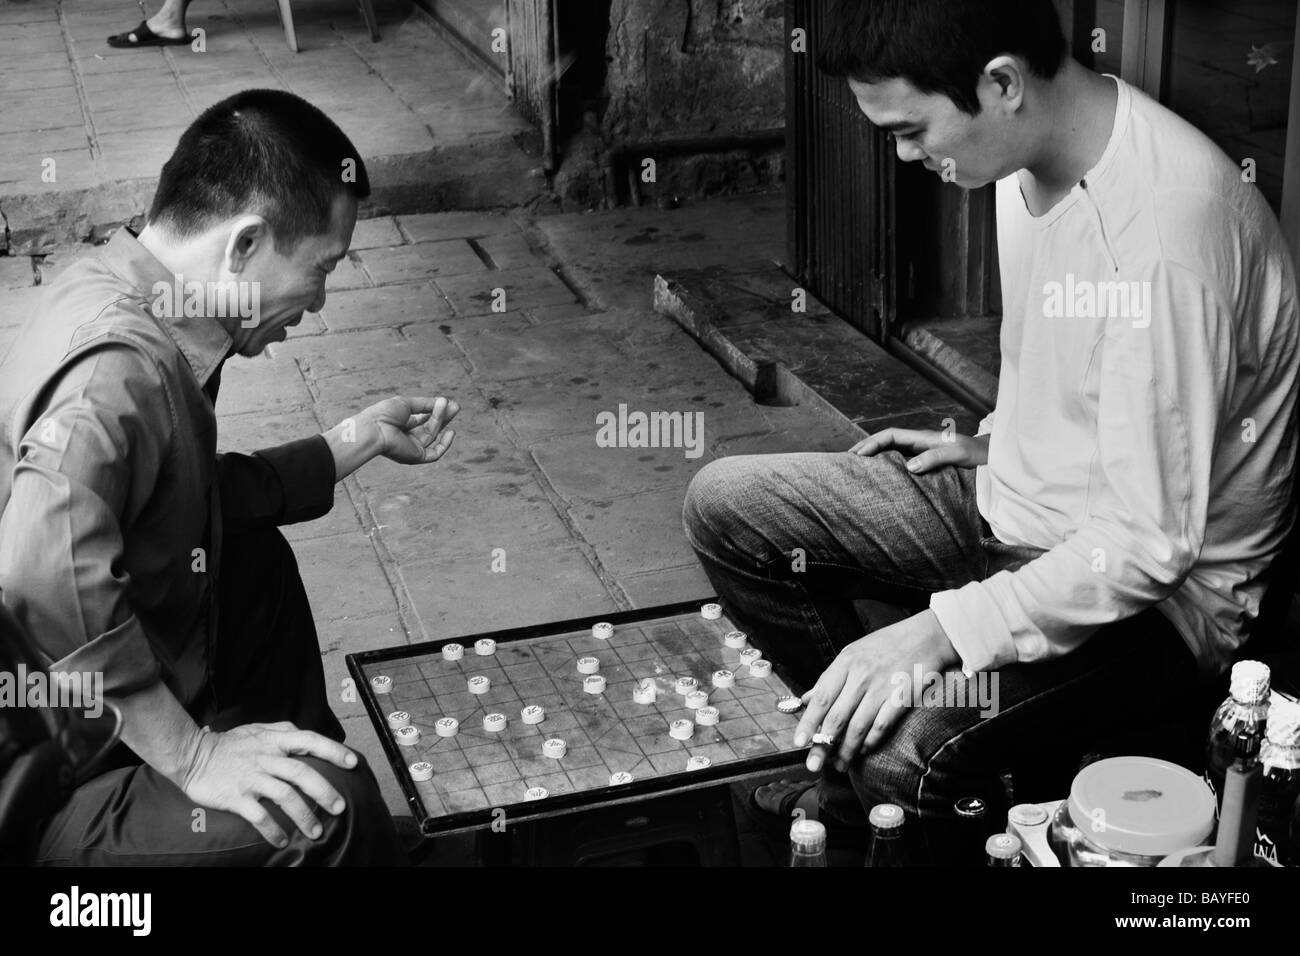 Two men play xiangqi on the streets of the Old Quarter, Hanoi, Socialist Republic of Vietnam. Stock Photo